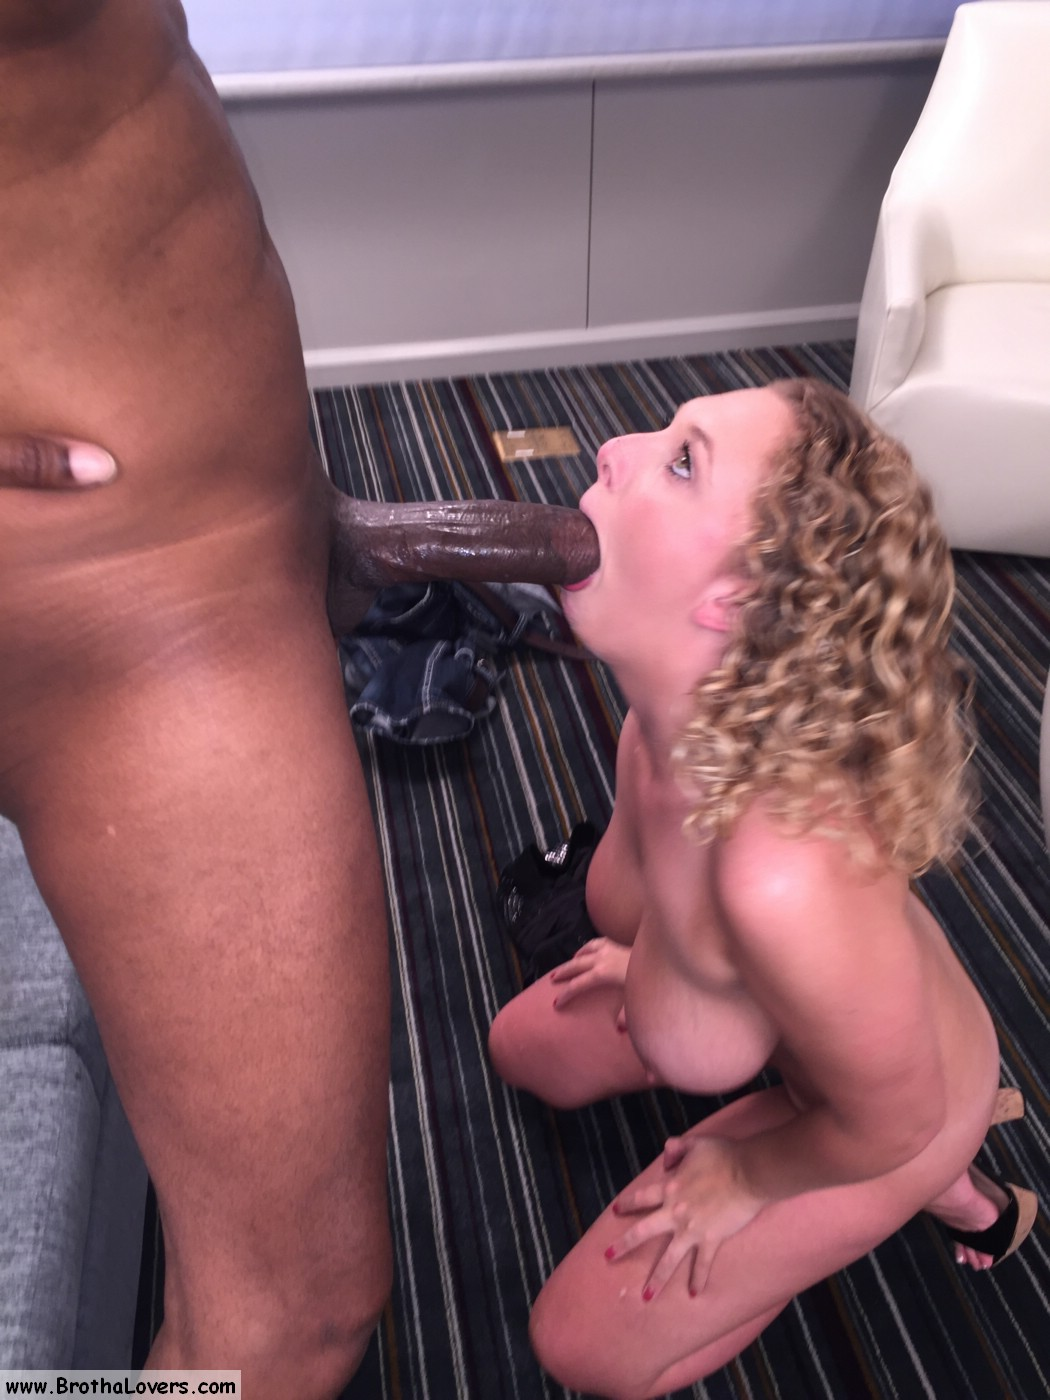 4k tiny pressley takes this massive african cock 5